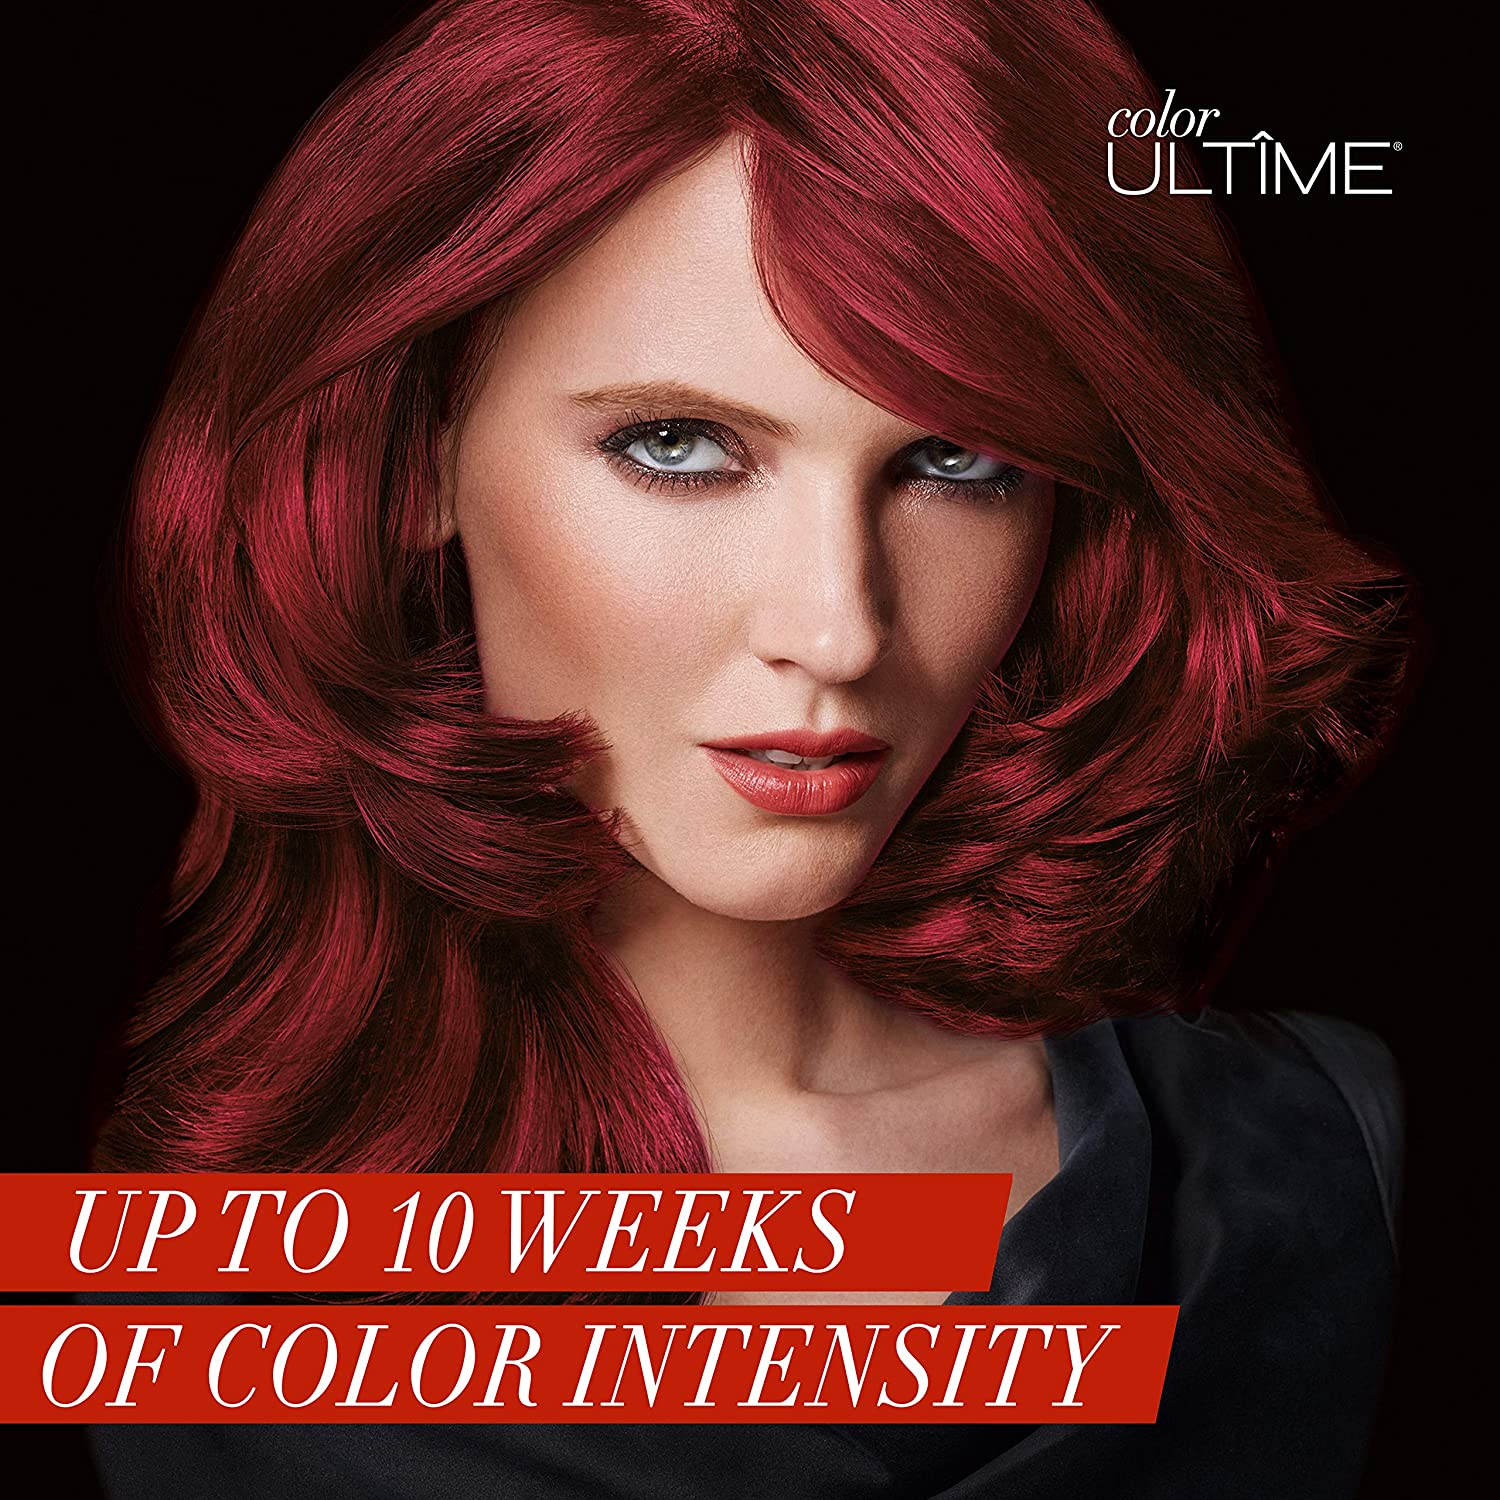 Schwarzkopf ColorUltime - Best professional hair color to cover gray